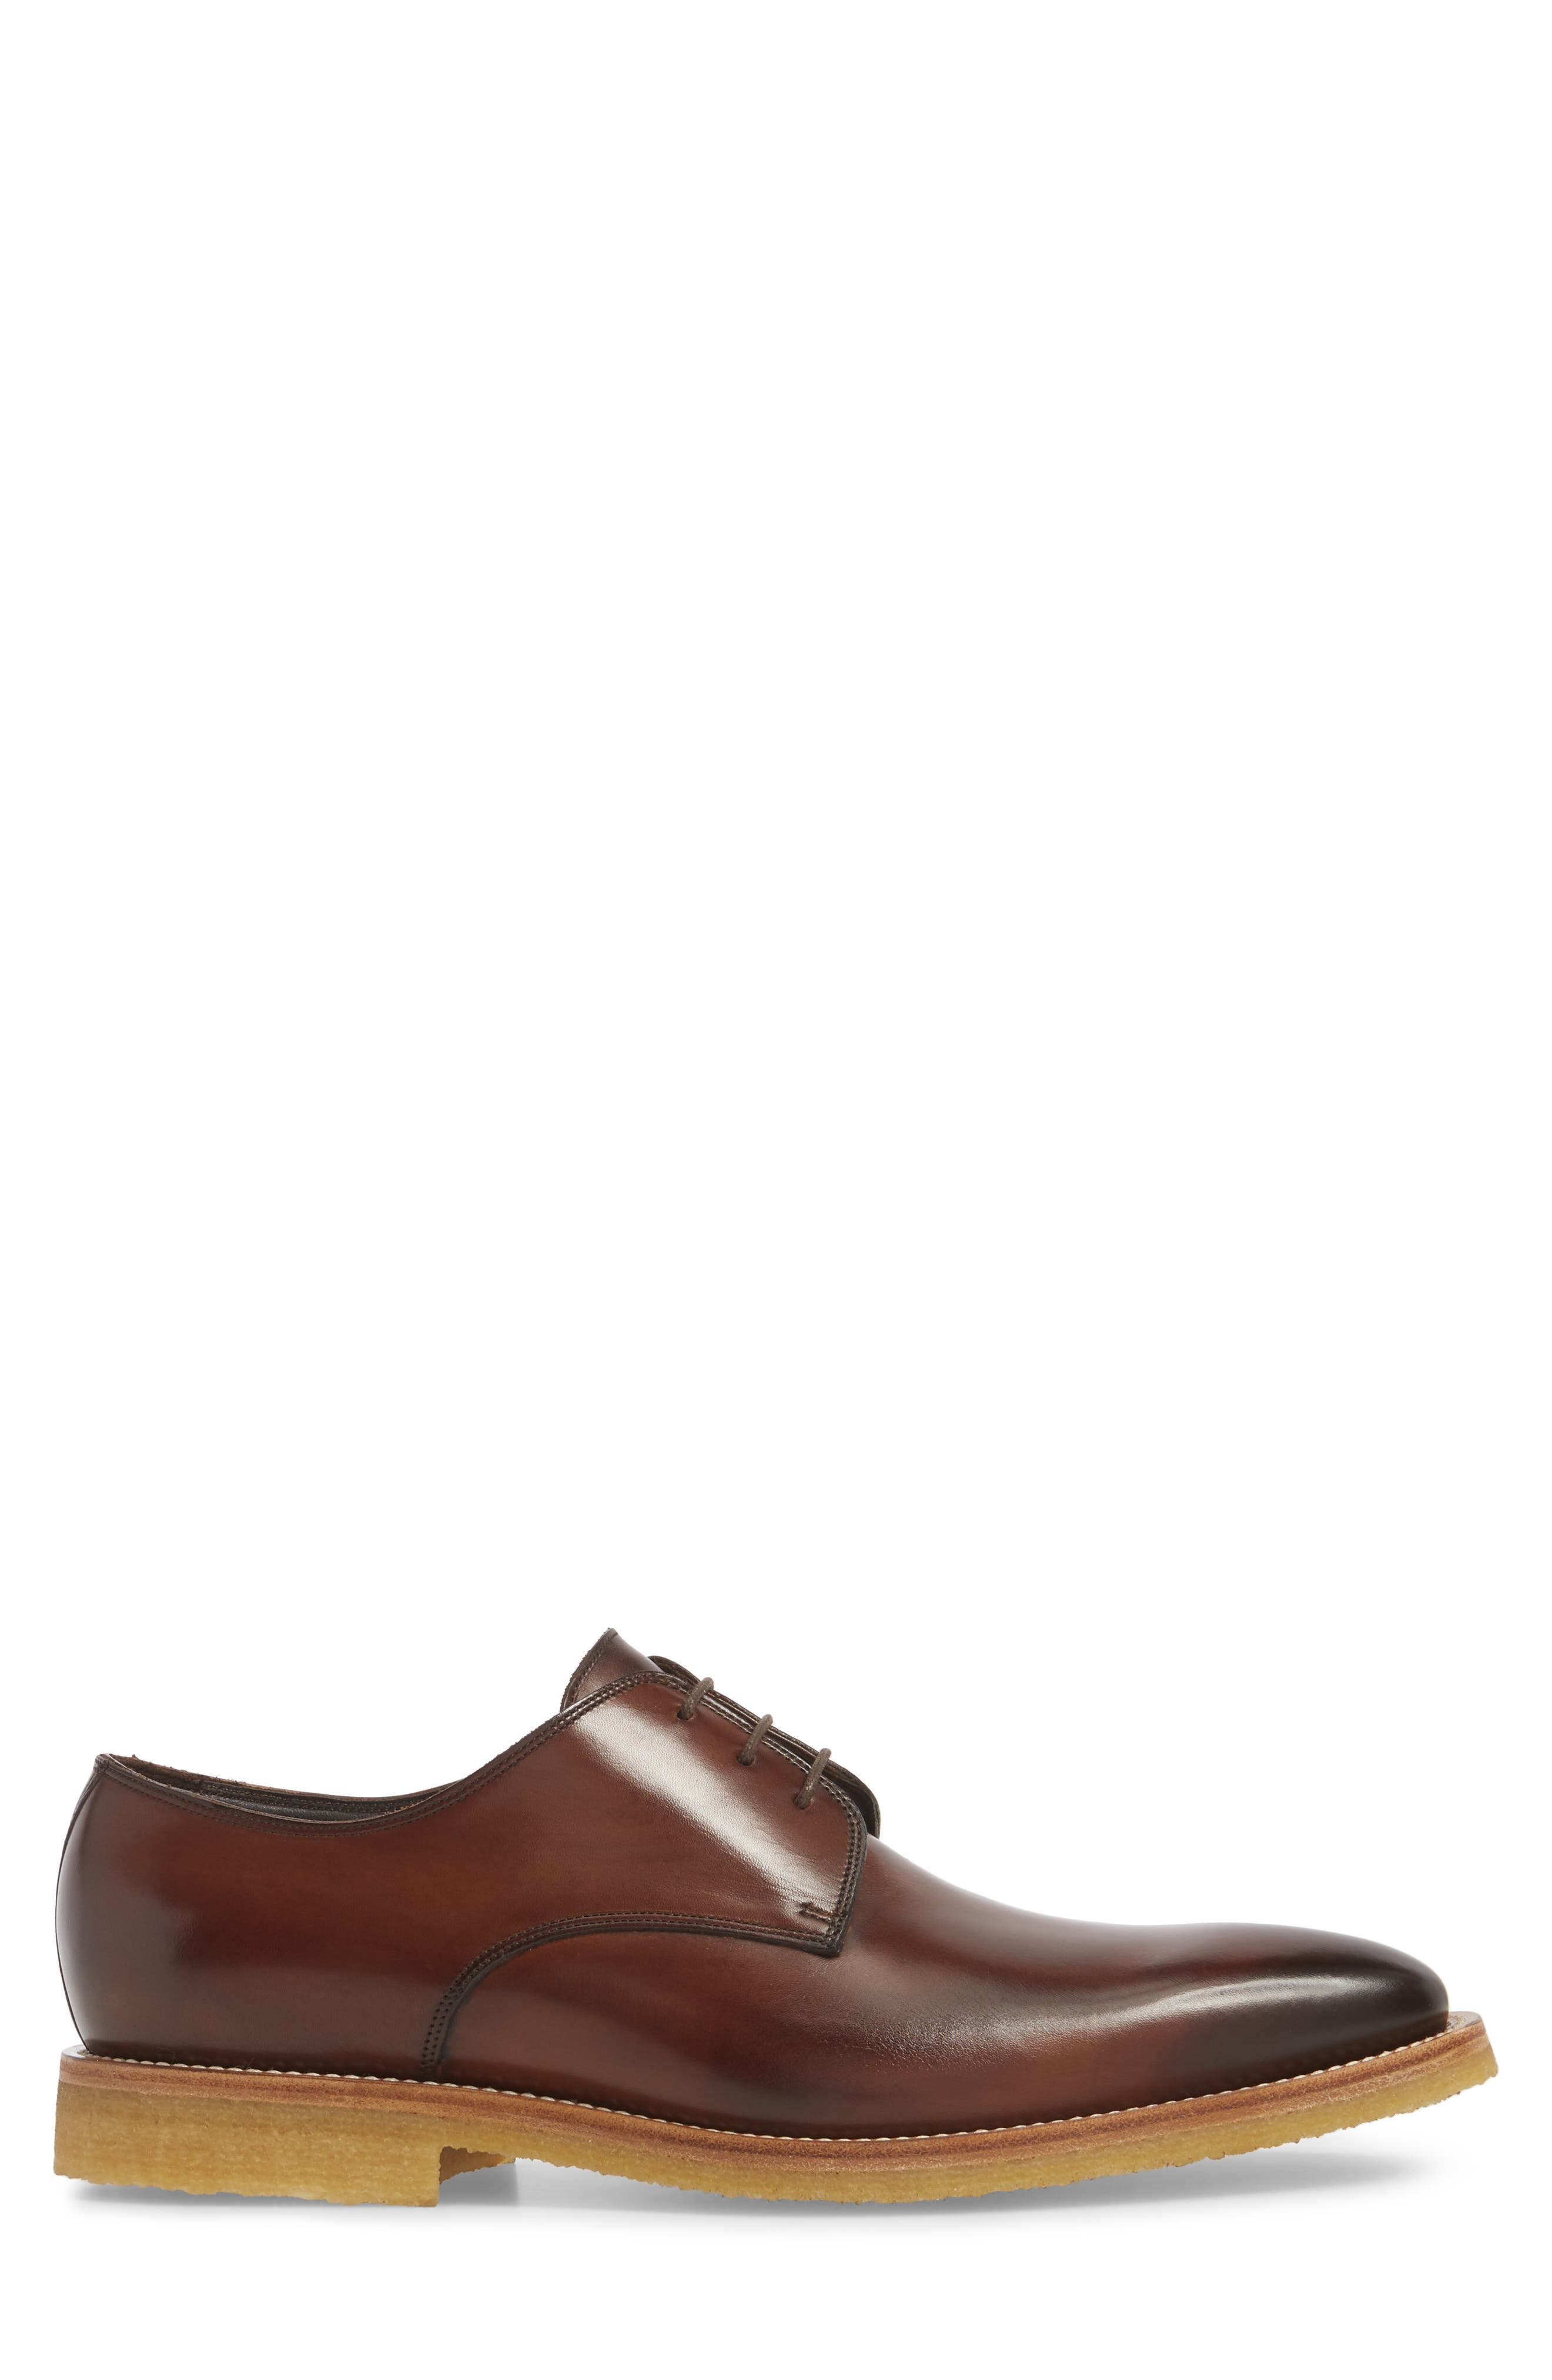 Caruso Plain Toe Derby,                             Alternate thumbnail 3, color,                             Chestnut Leather